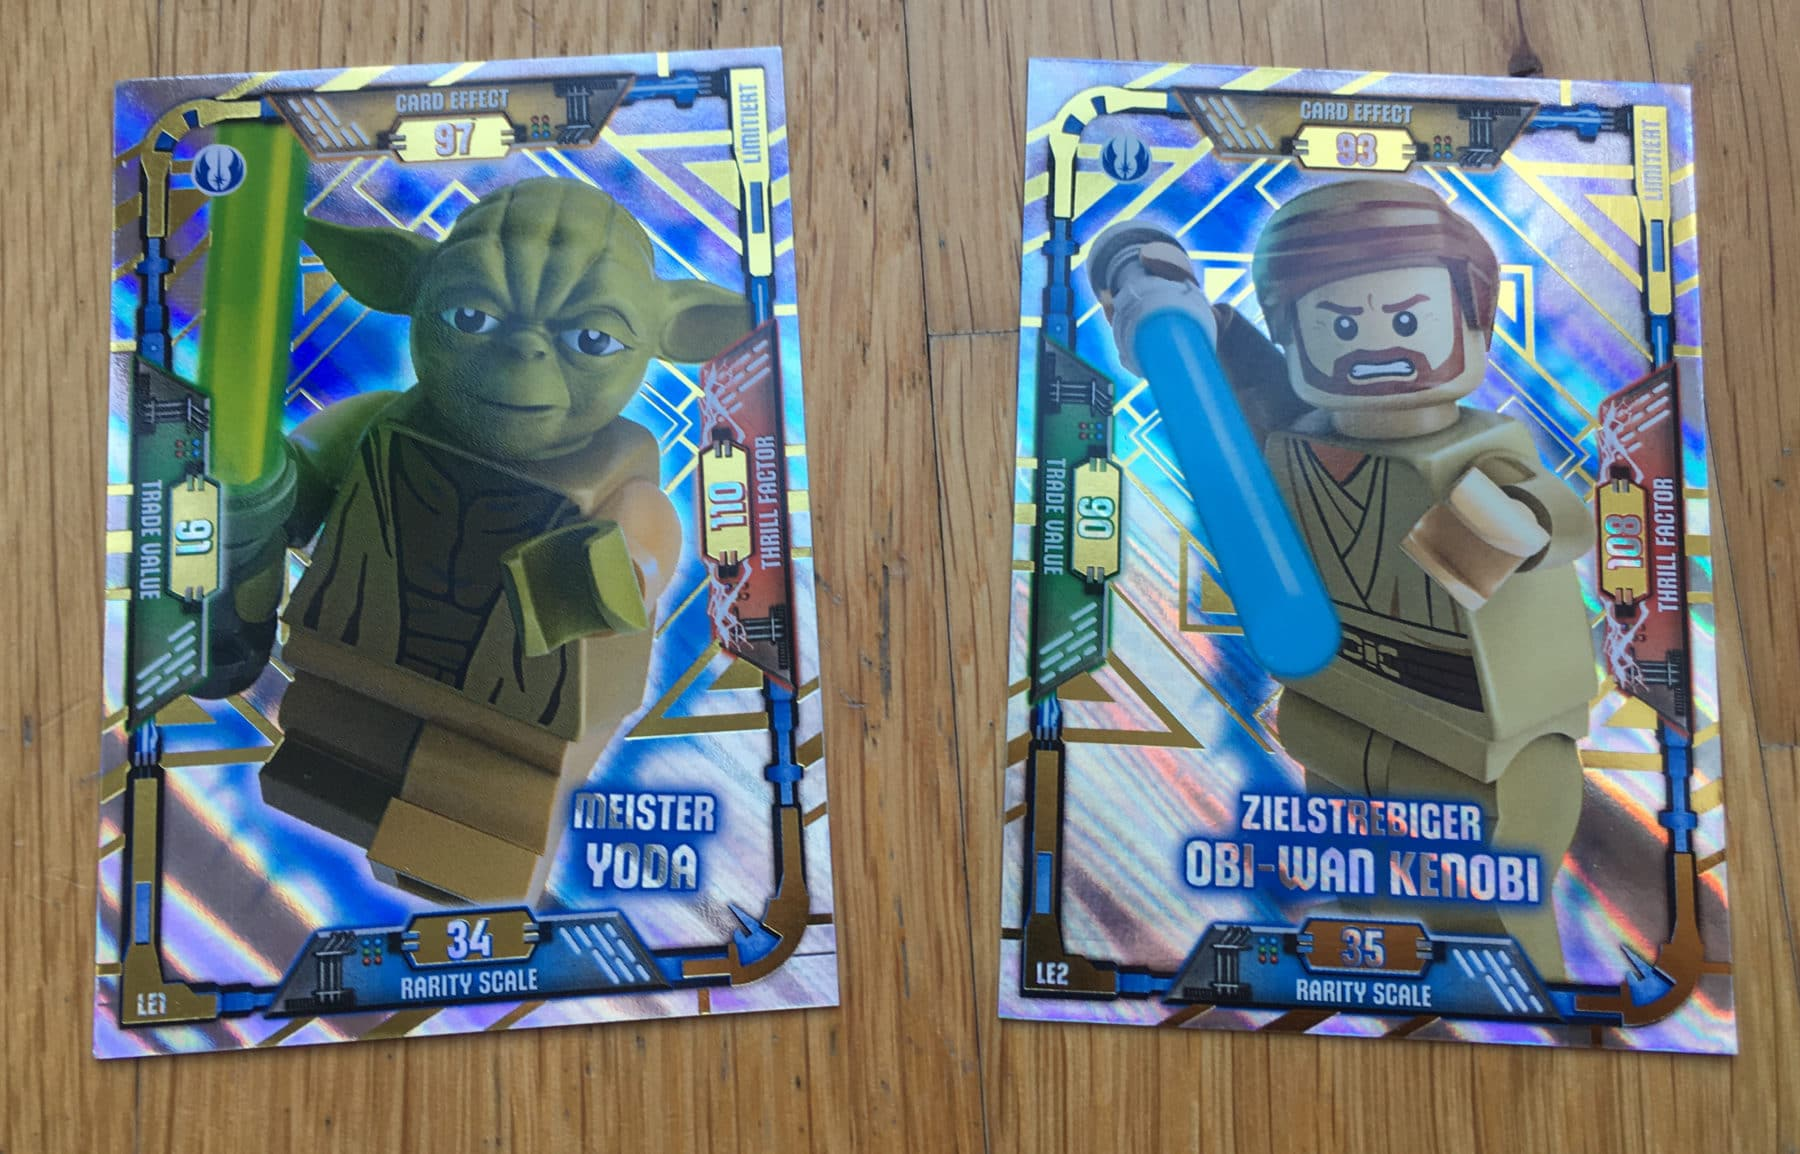 LEGO Star Wars Sammelkarten: Limited Edition Karten